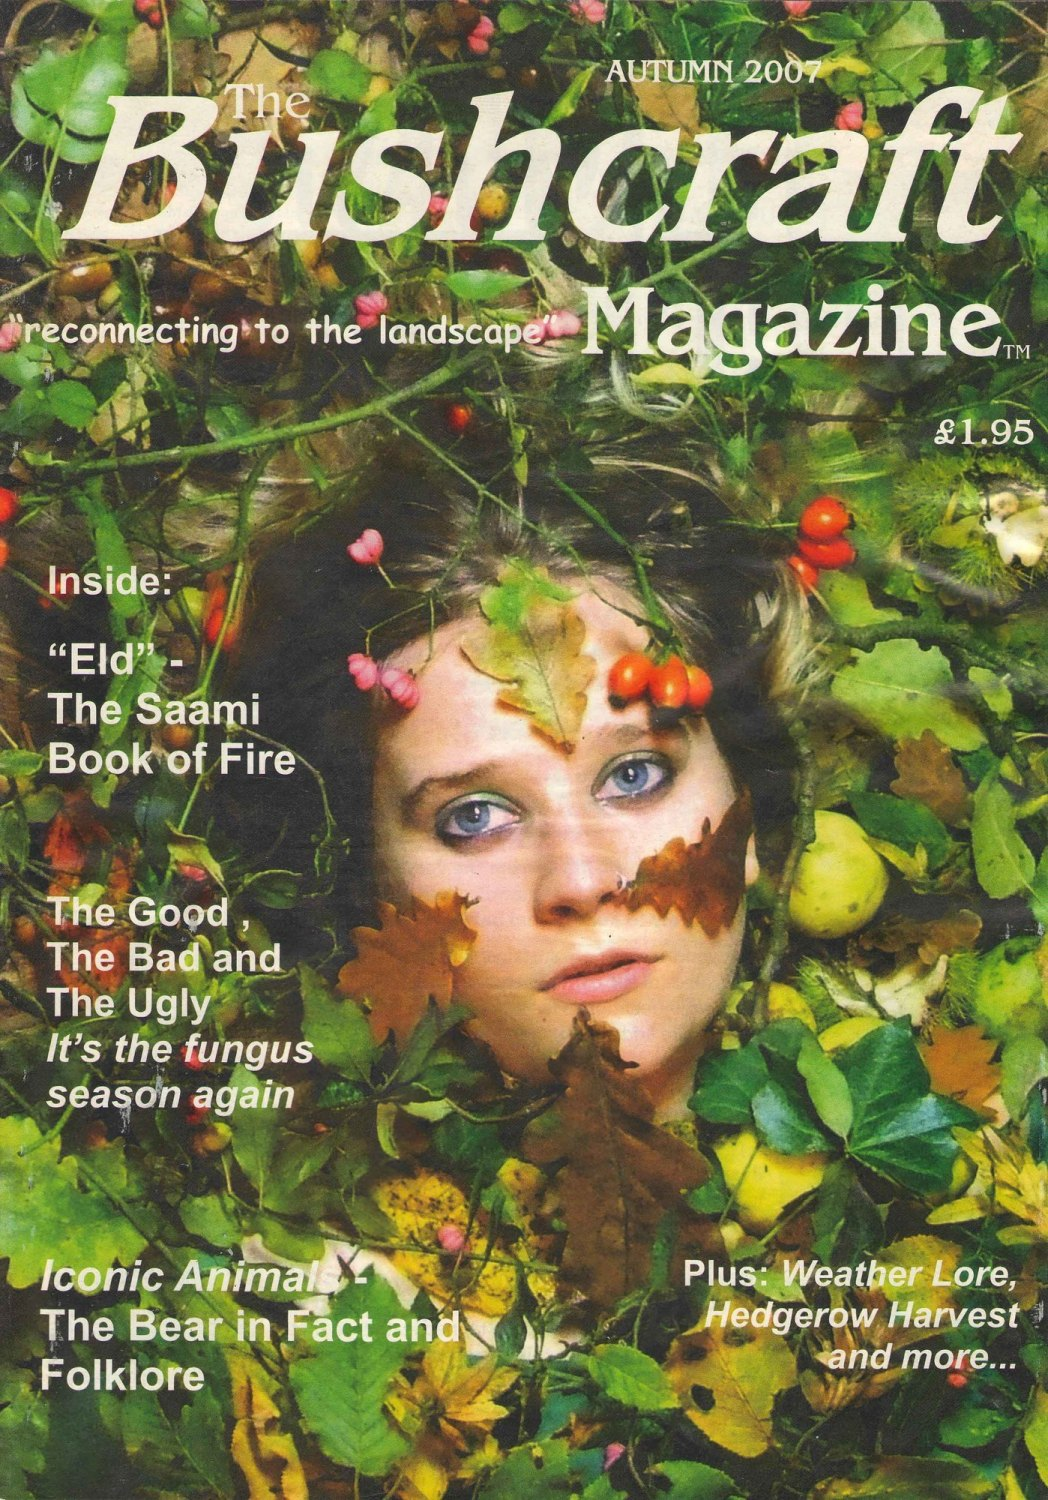 The Bushcraft Magazine - Volume 03 Number 03 - Preowned